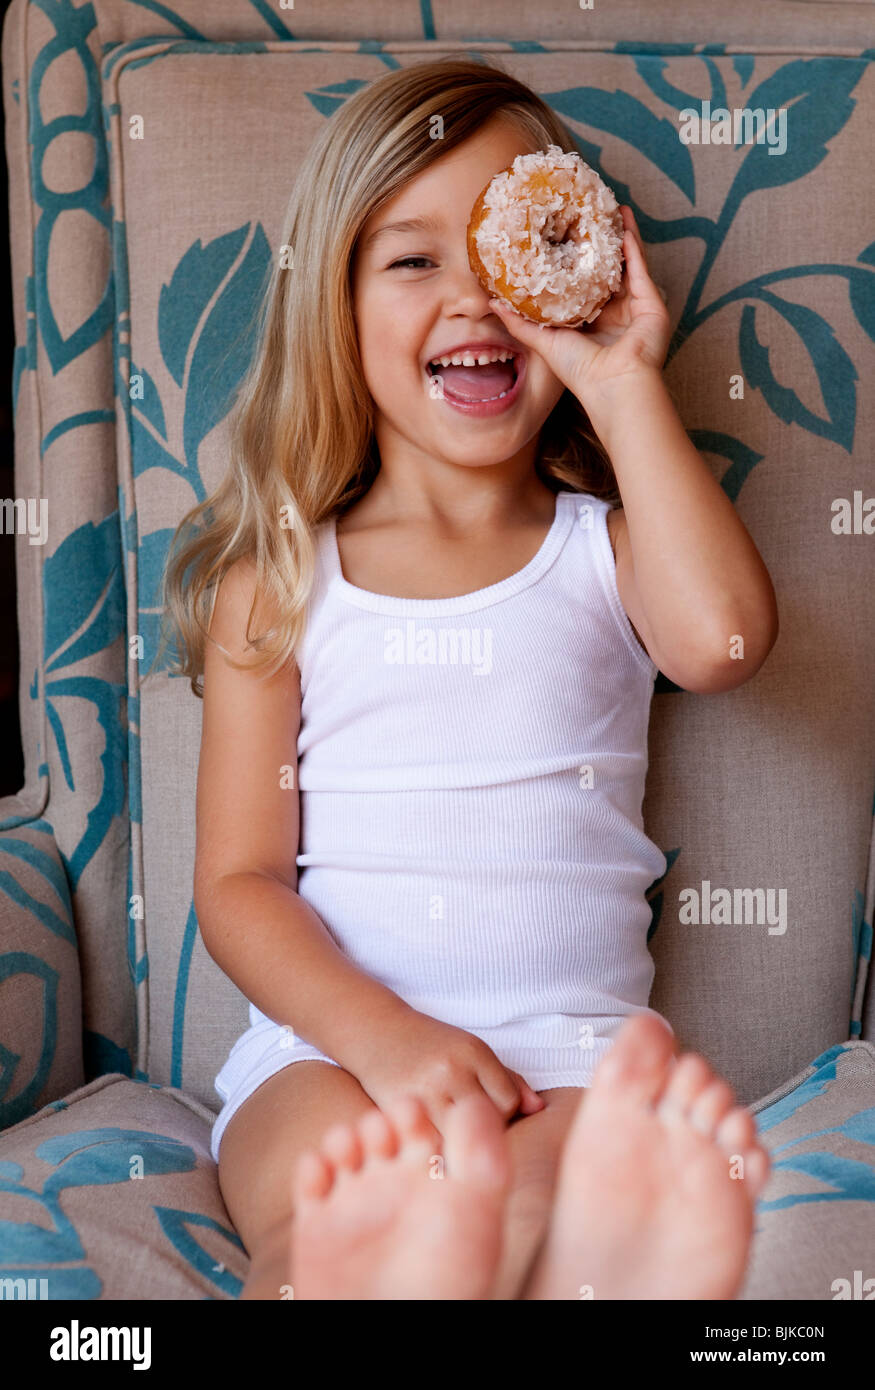 Young girl sitting on chair peeking through donut - Stock Image